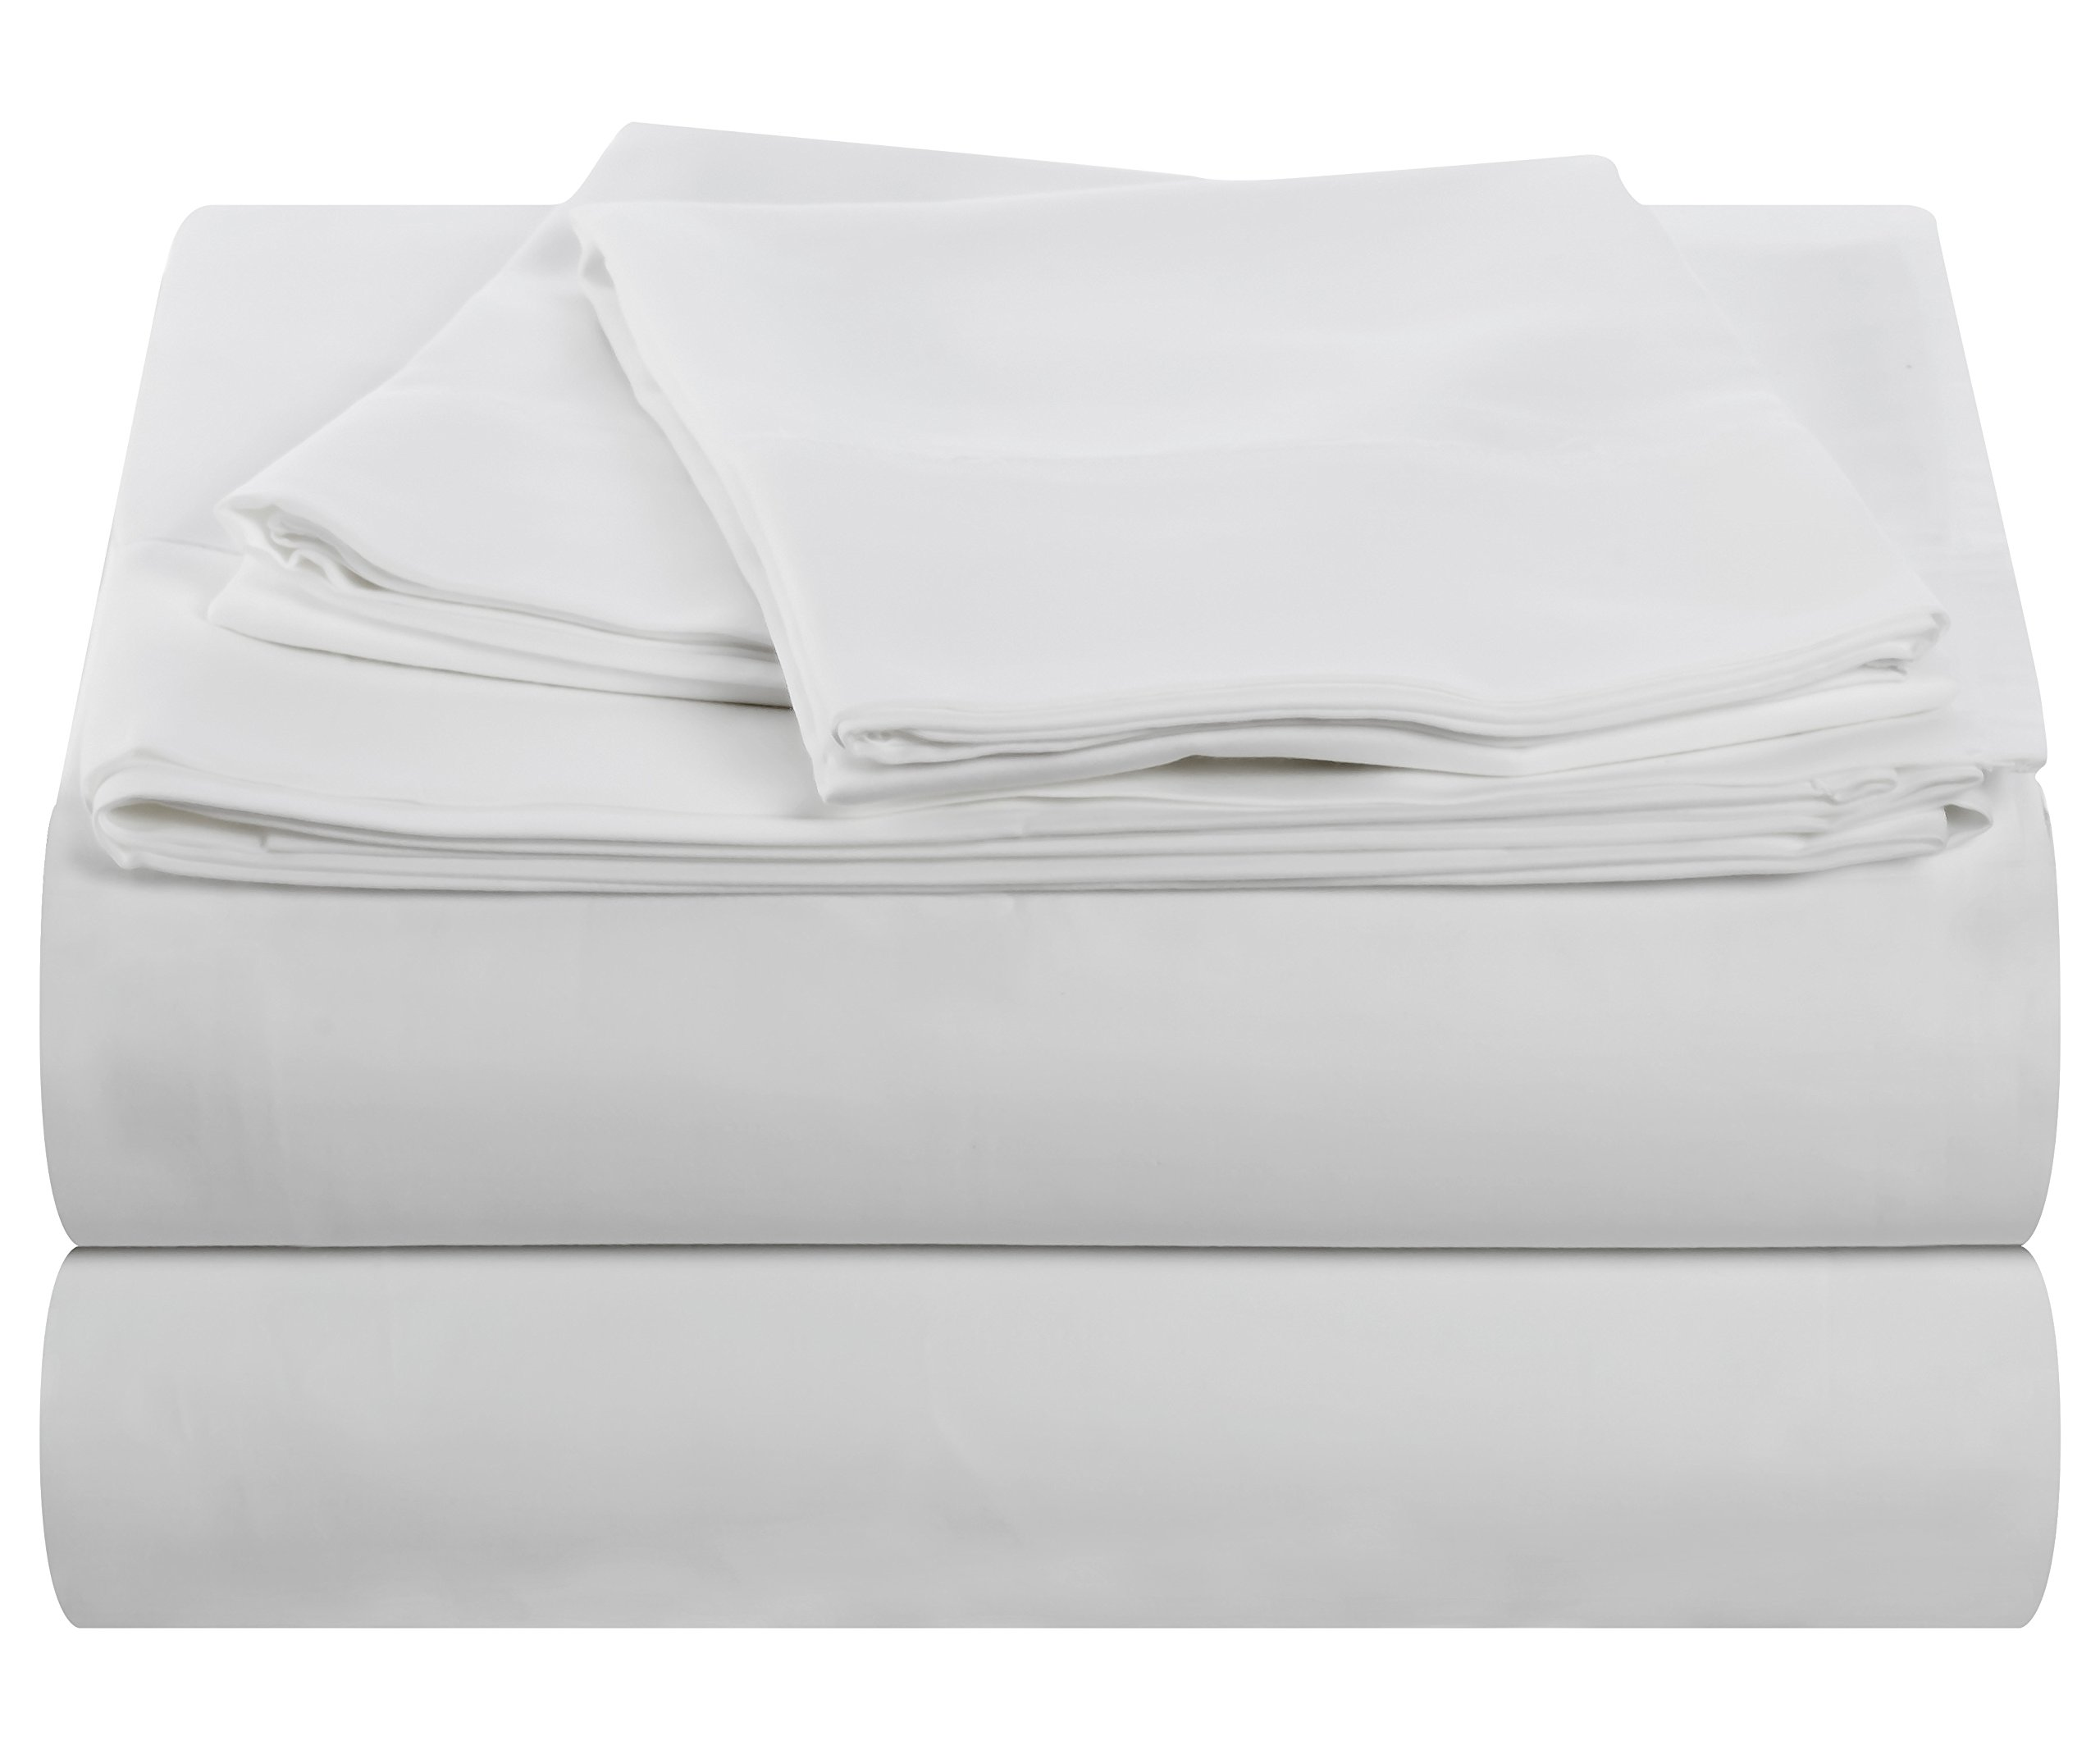 Outlast All Season Temperature Regulating Sheet Set in White, King